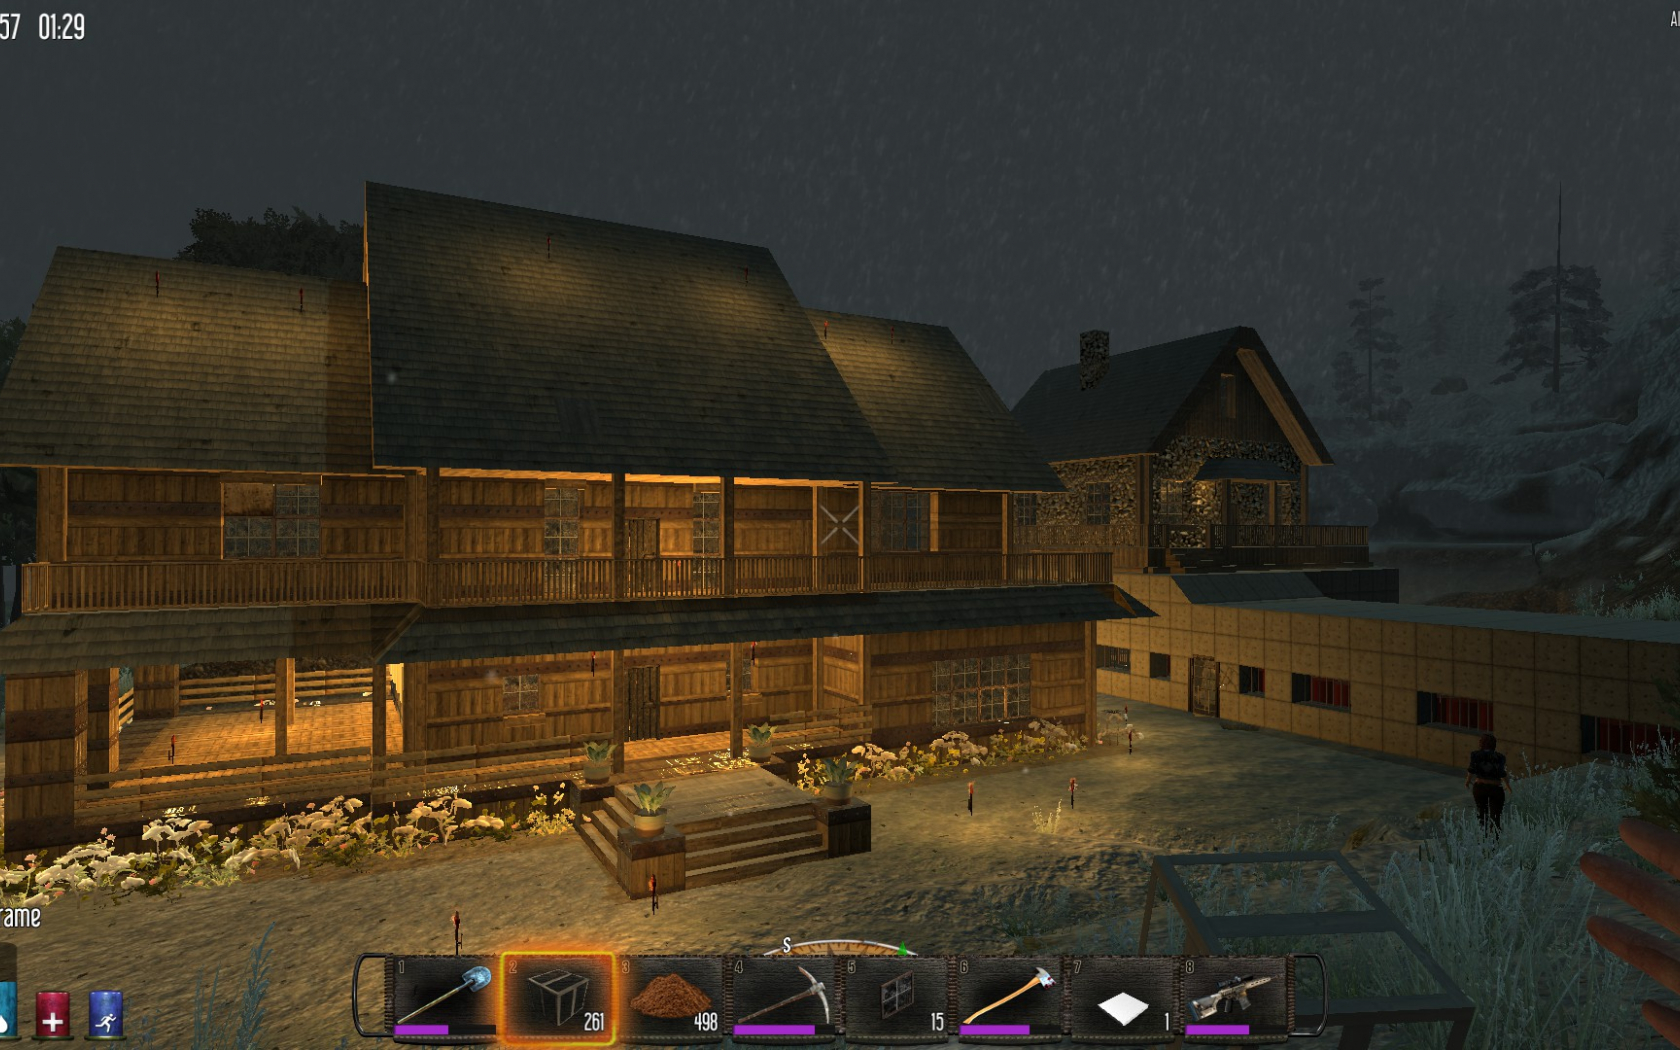 Free Download Days To Die Screenshots 1920x1080 For Your